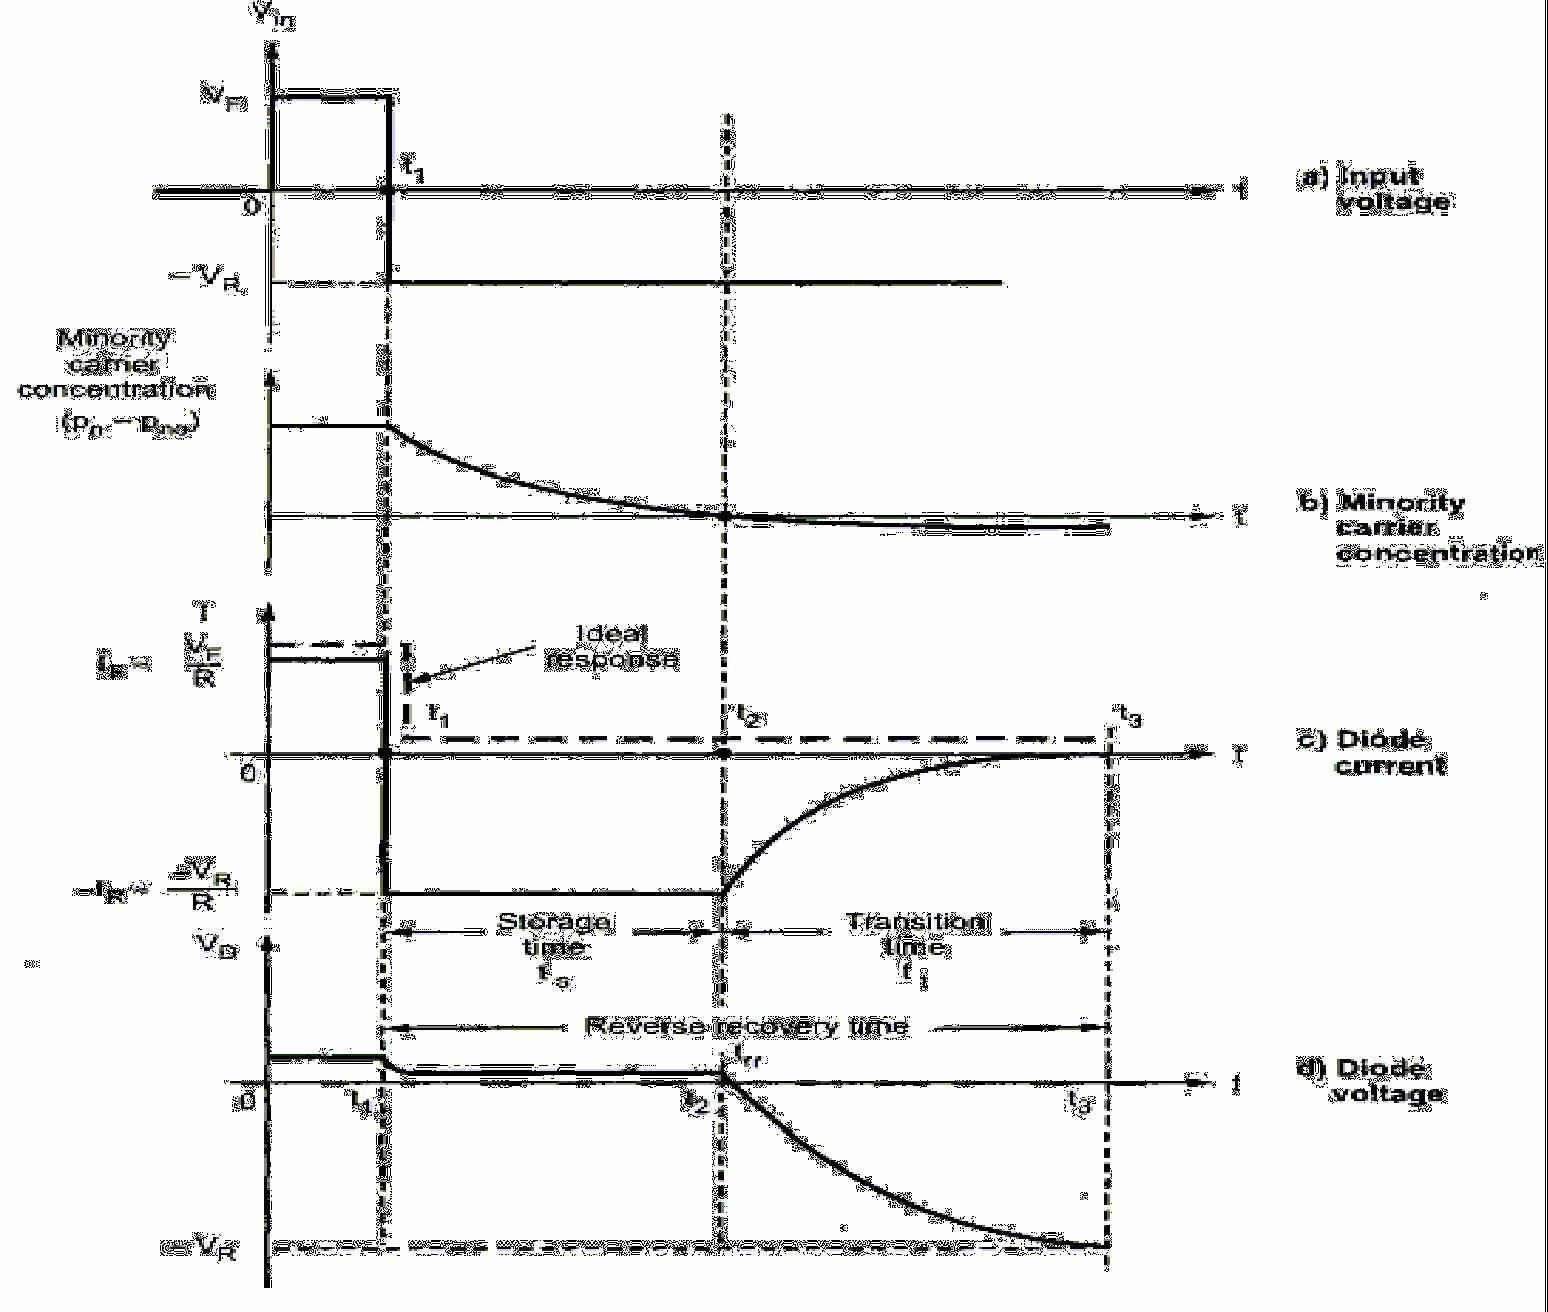 hight resolution of the reverse recovery time depends on the rc time constant where c is a transition capacitance of a diode thus the transition capacitance plays an important